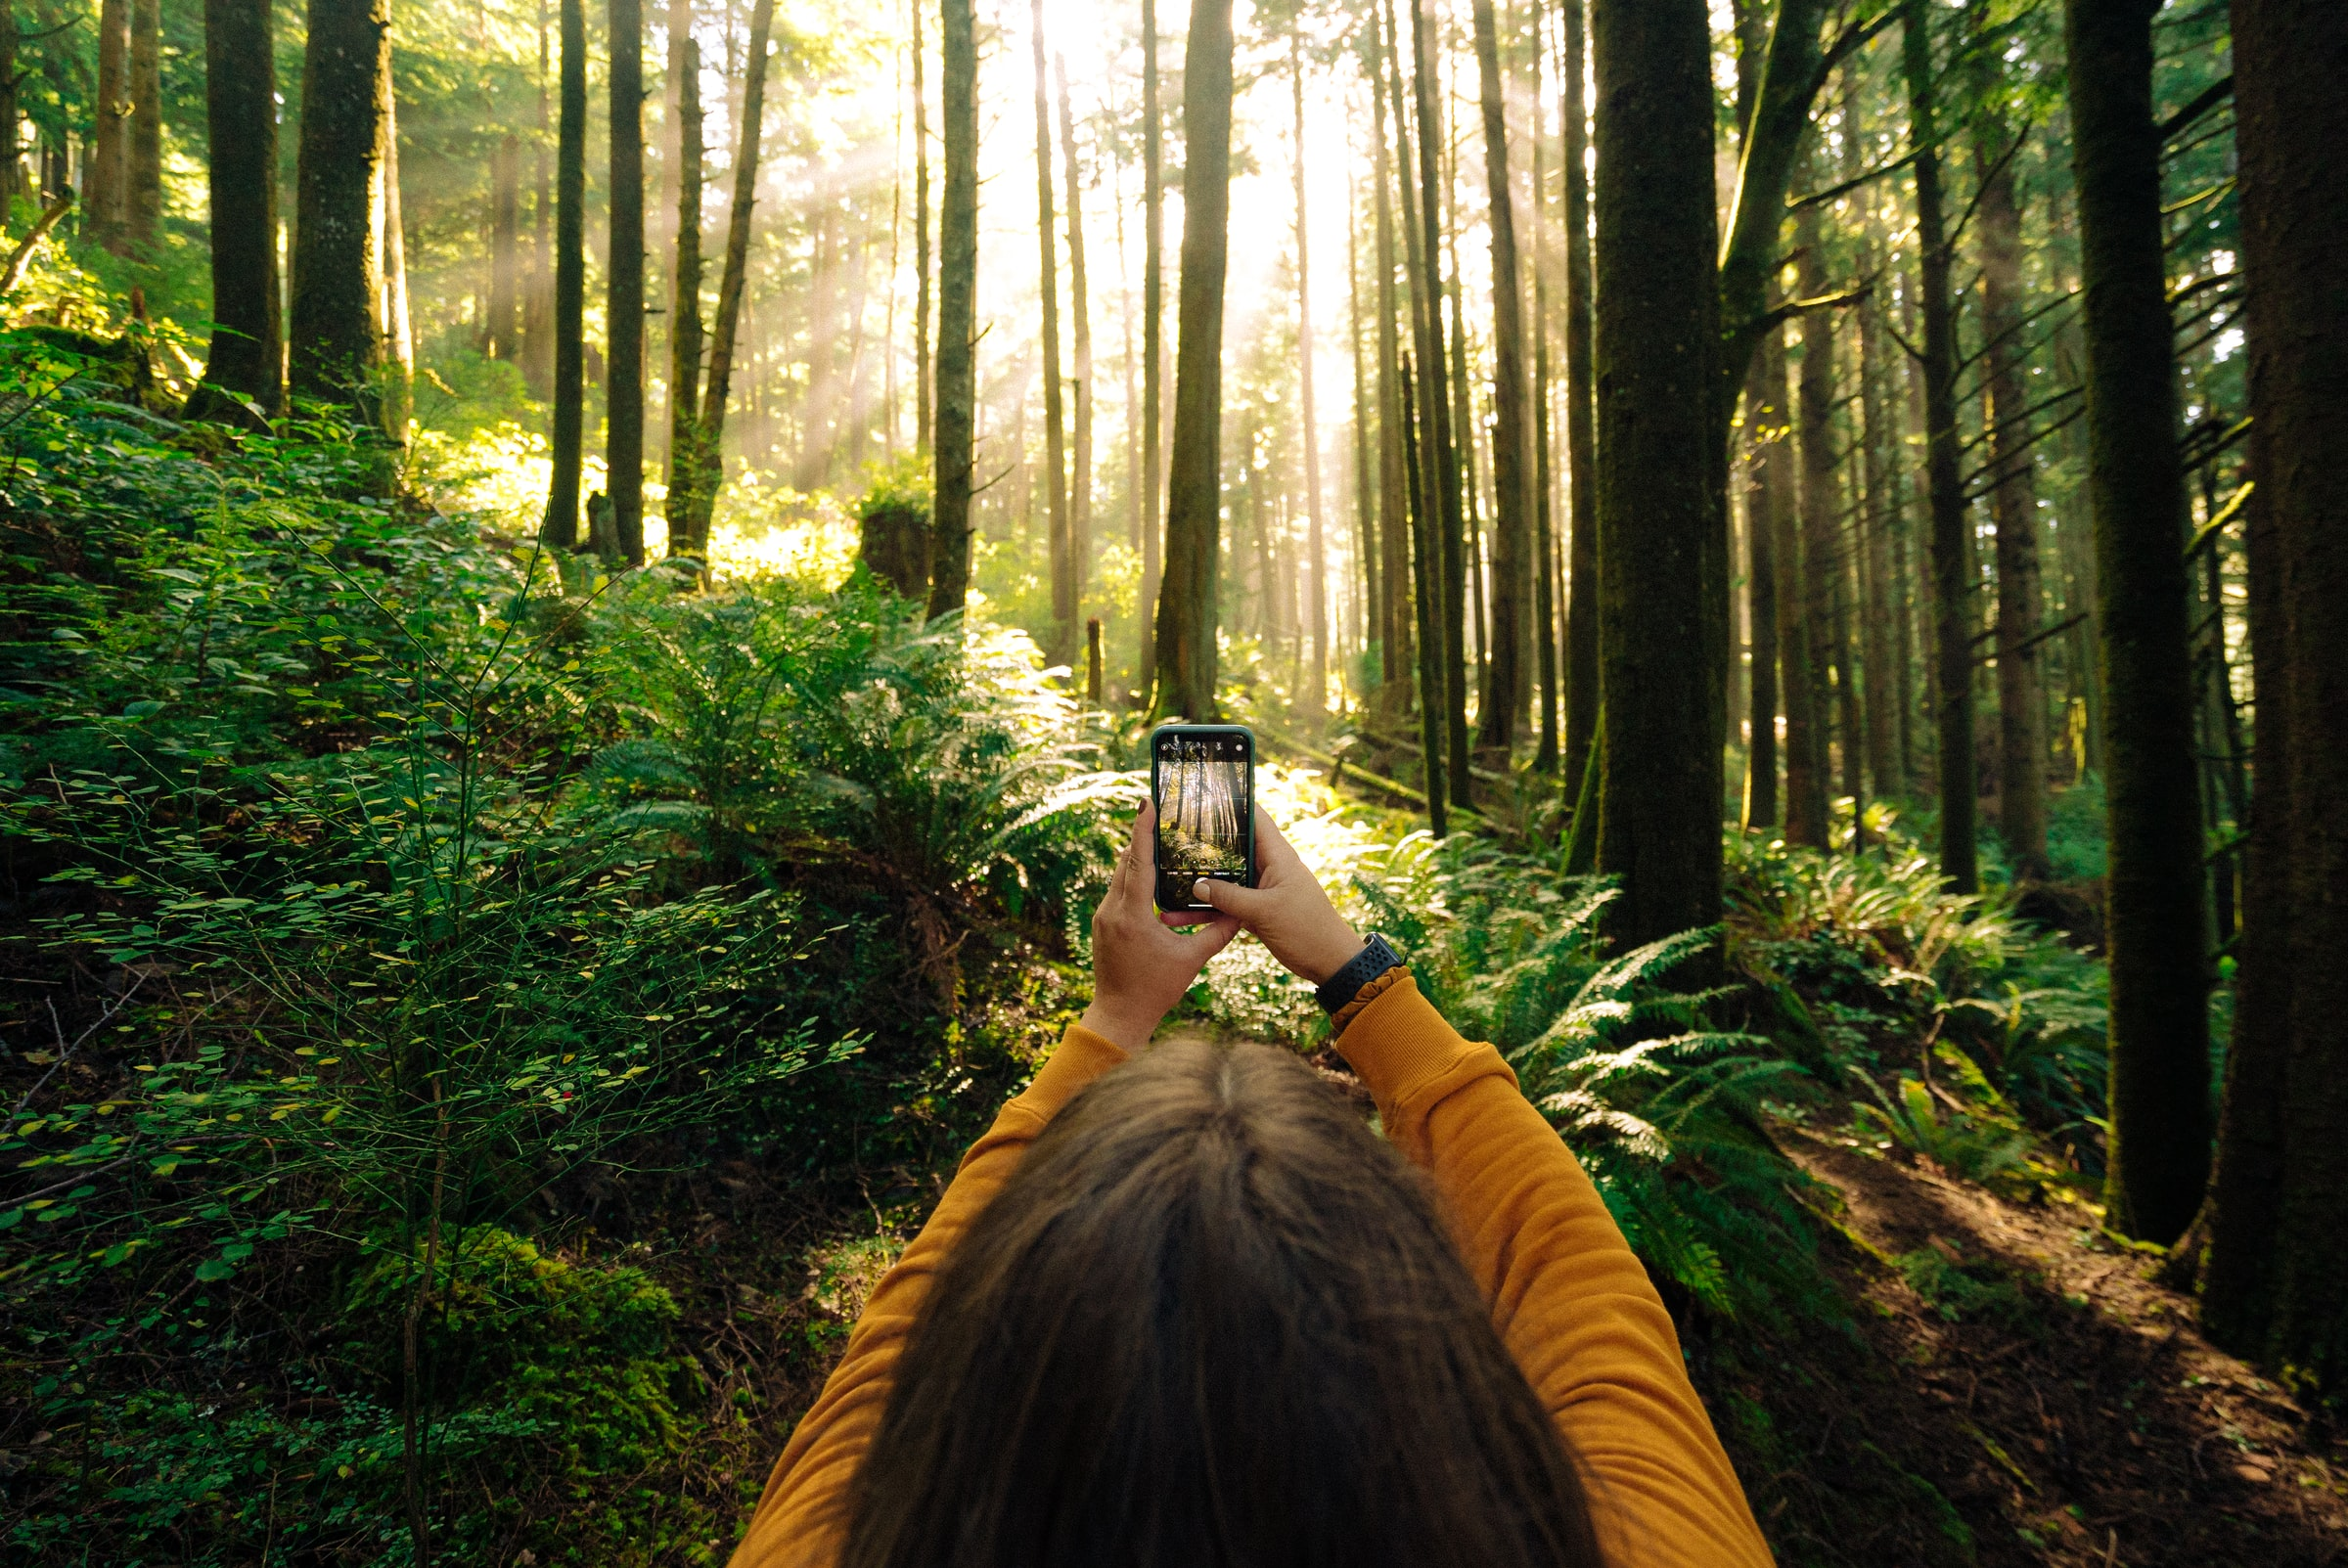 5 Instagram Apps to Make Your Visual Content Stand Out